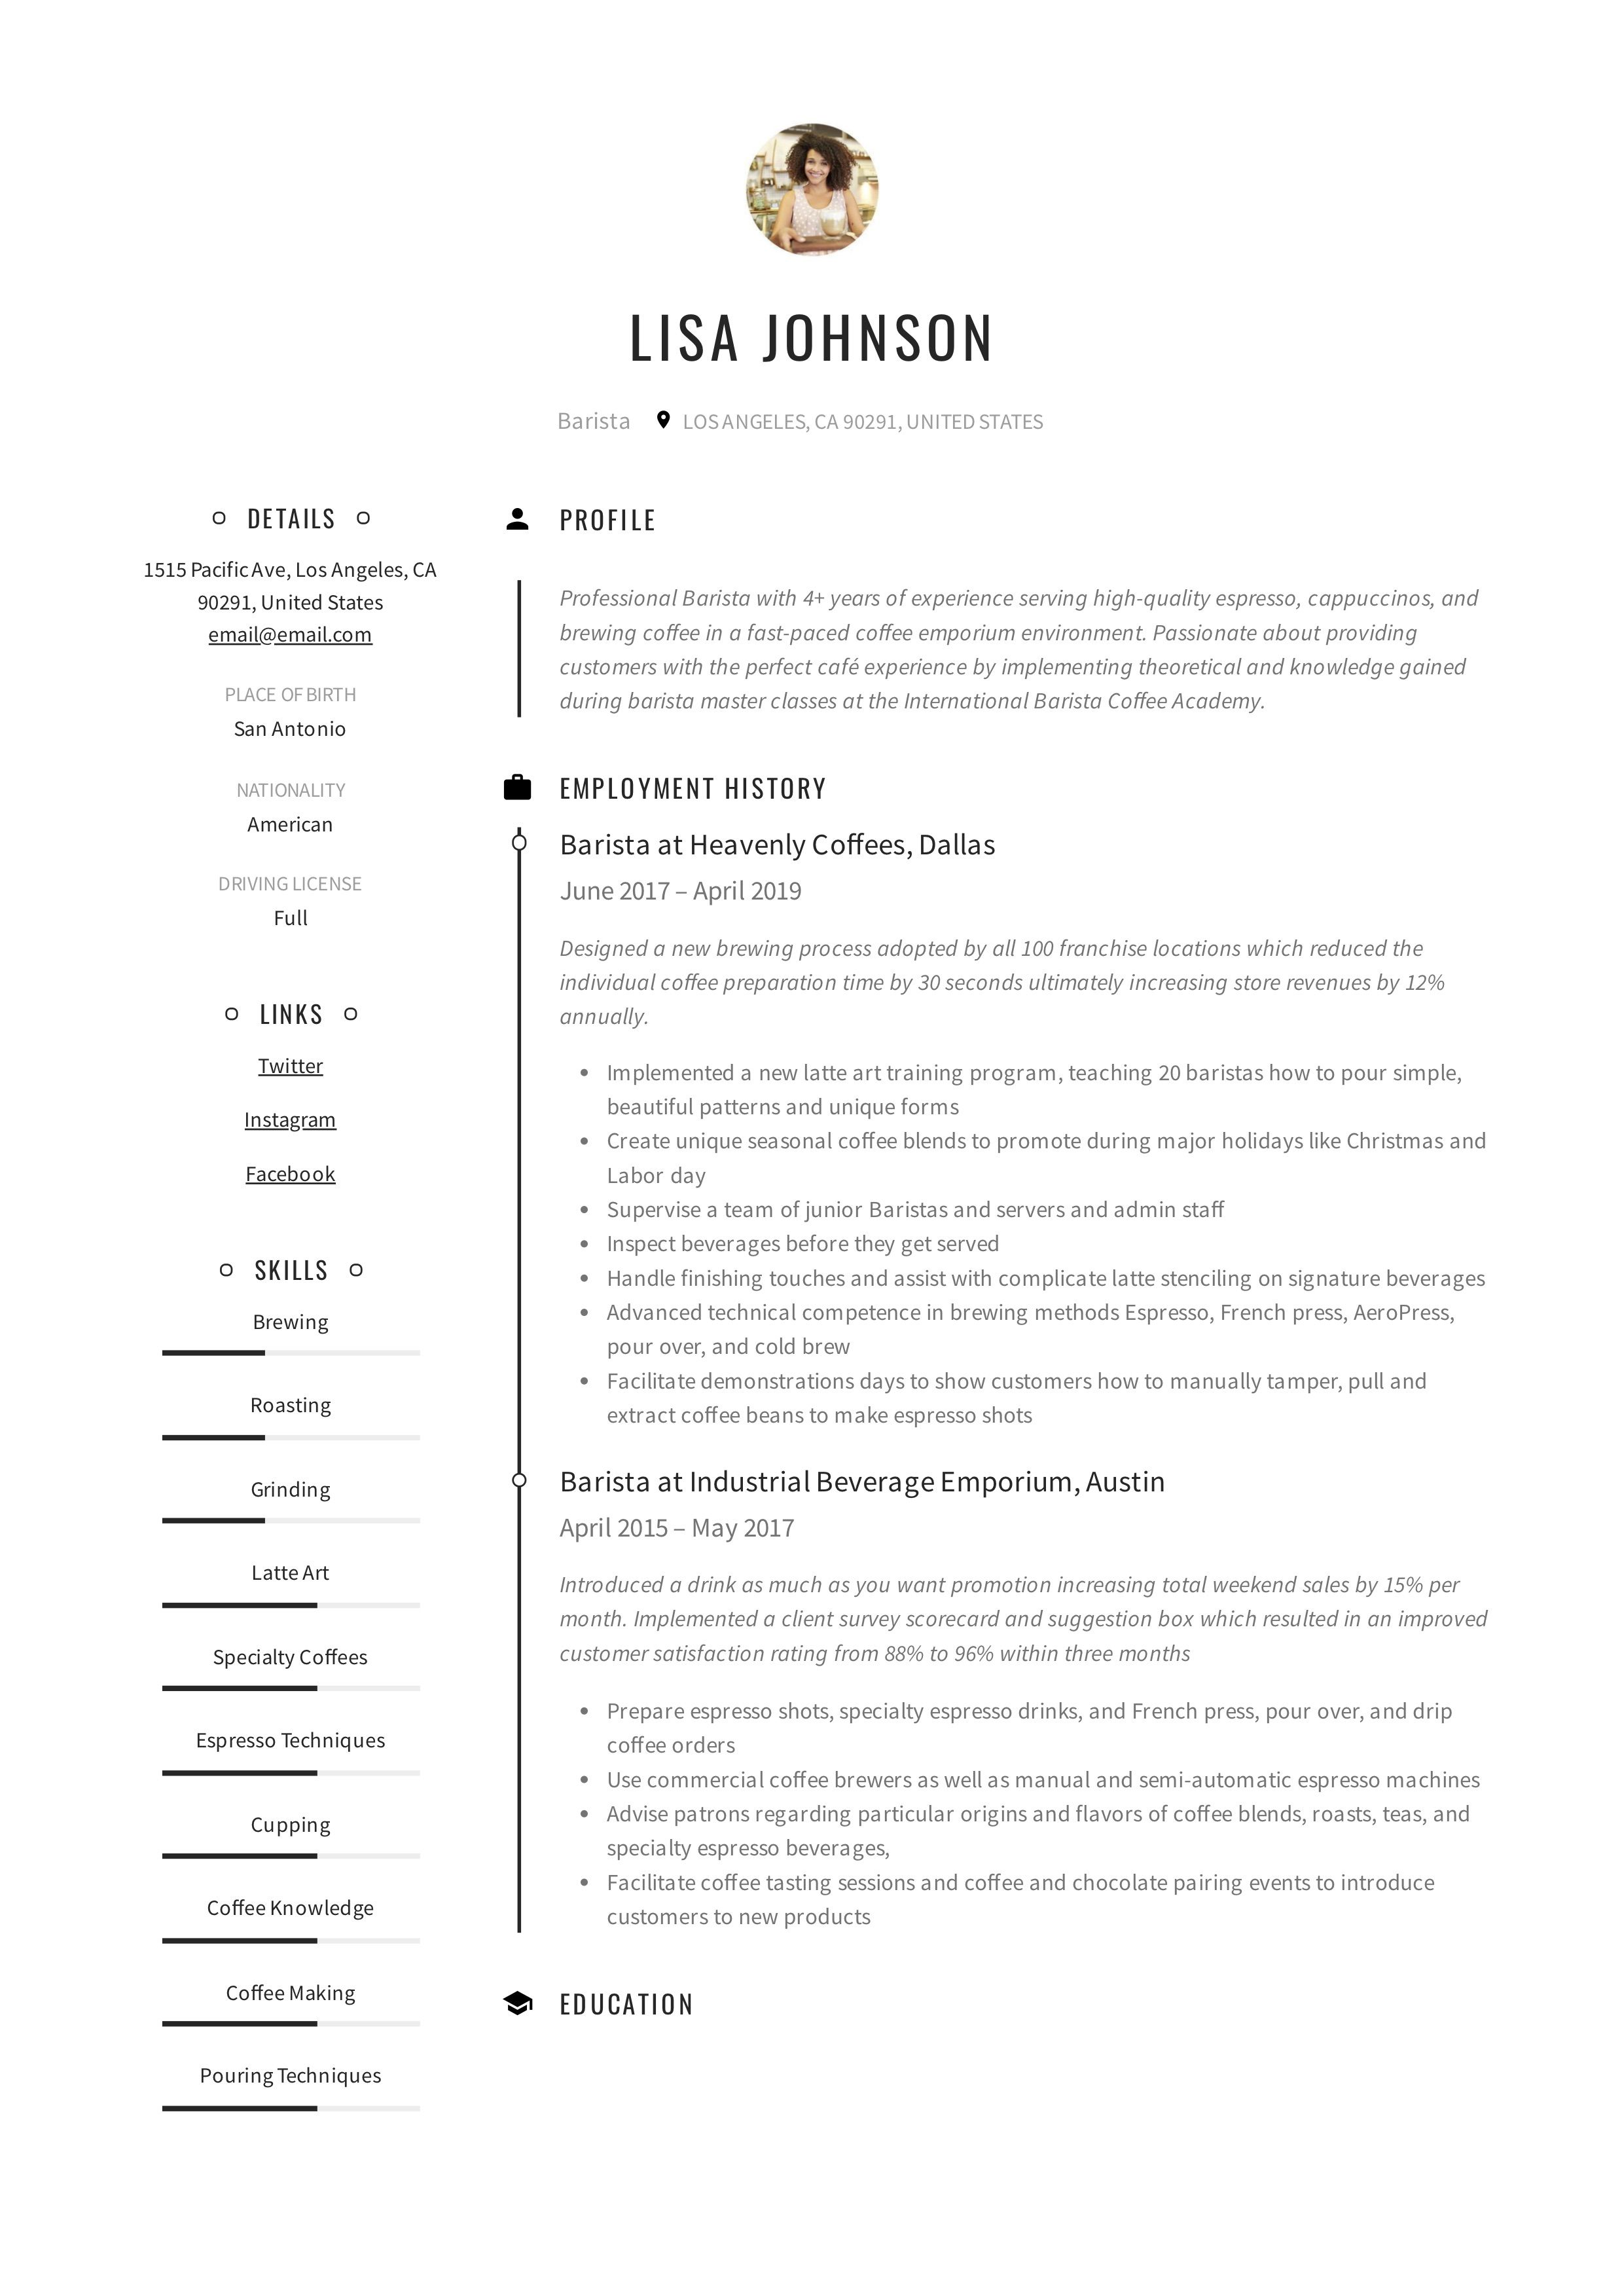 Barista resume writing guide in 2020 guided writing